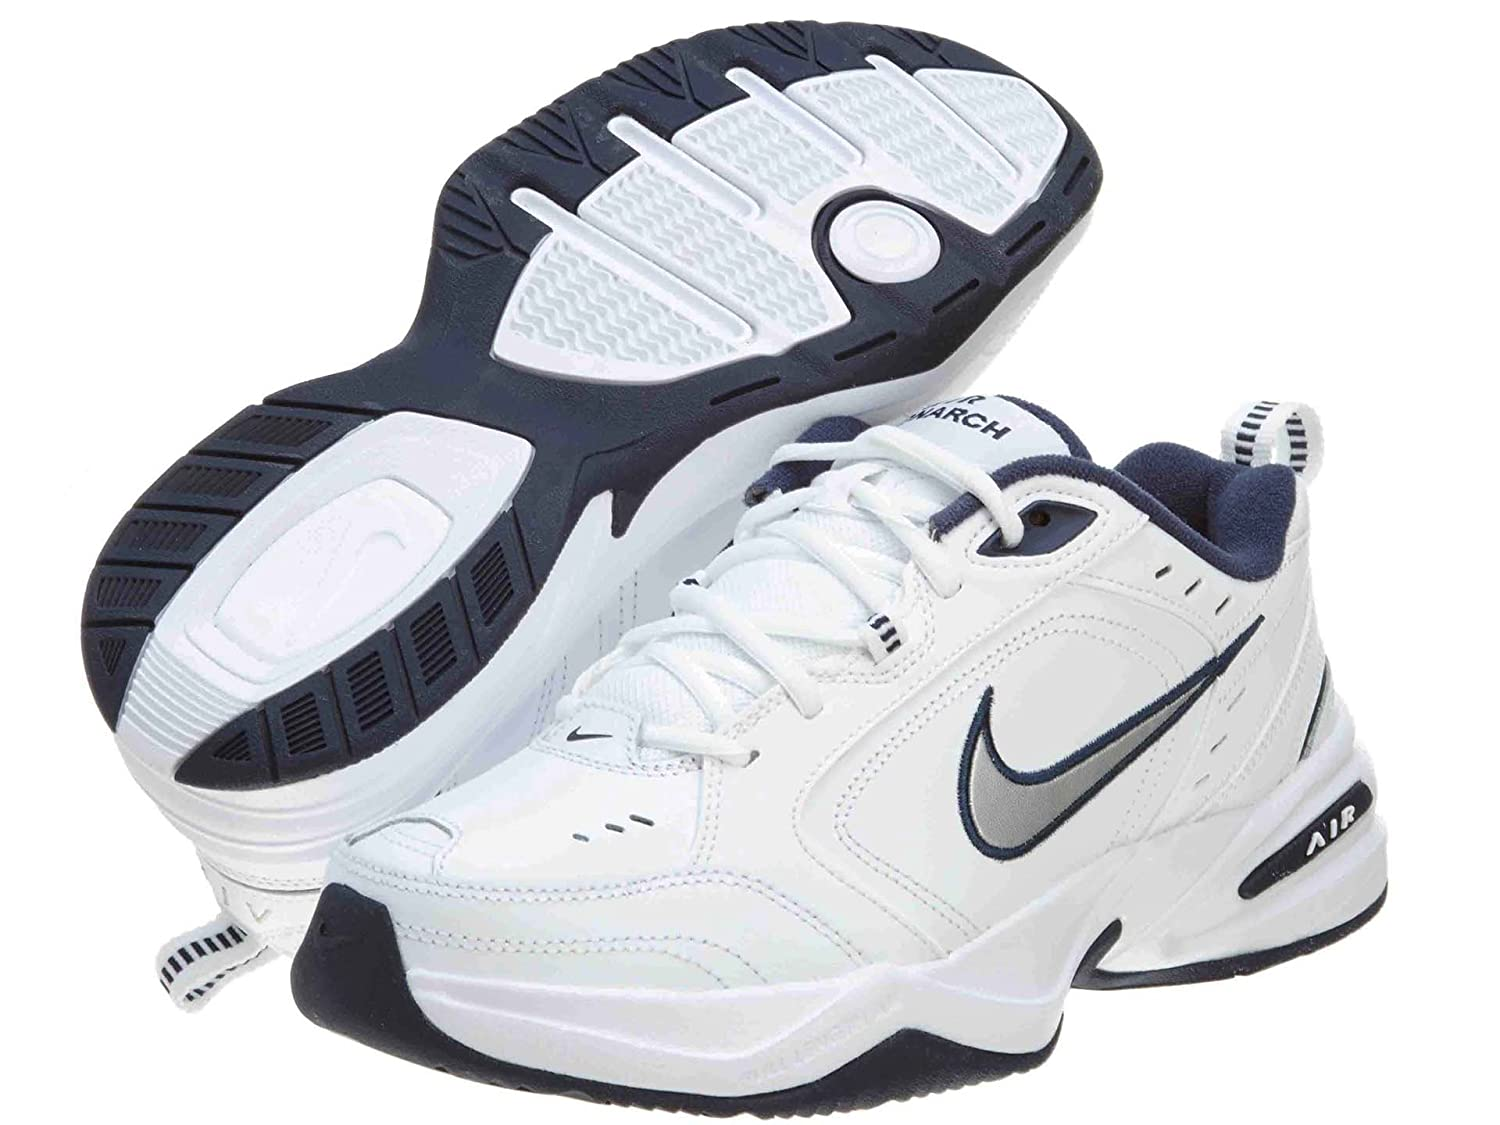 Nike Air Monarch Iv Mens415445 Style: 415445-102 Size: 11.5 M US